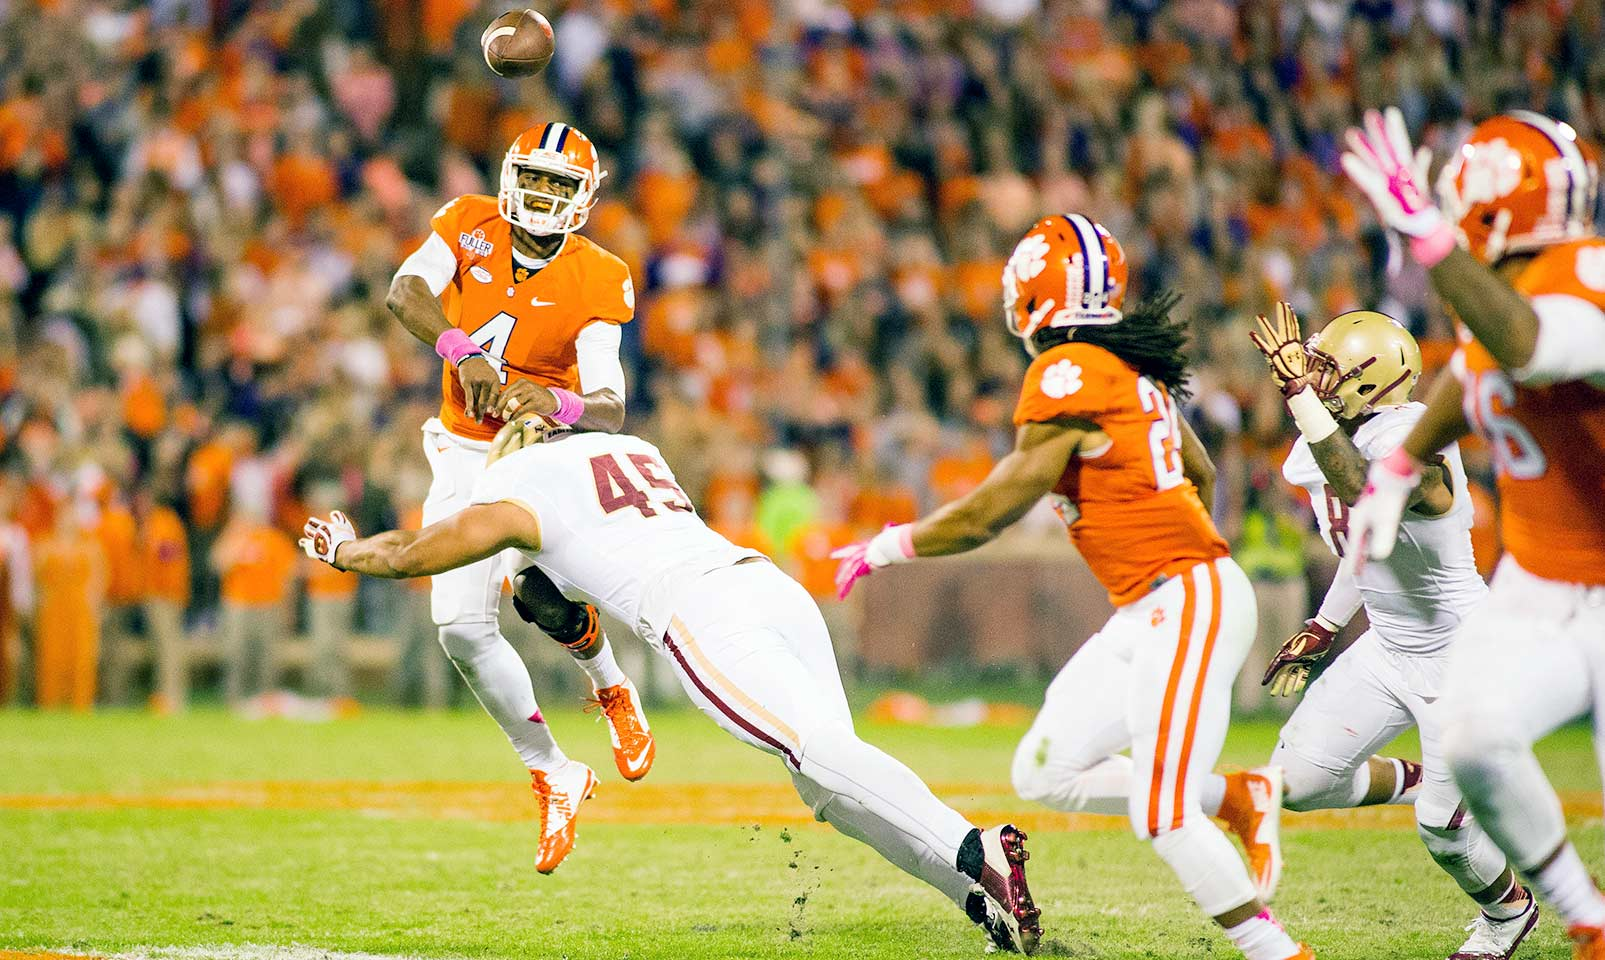 Clemson 34, Boston College 17: Deshaun Watson singlehandedly took care of the Eagles with 420 yards passing and four total touchdowns.